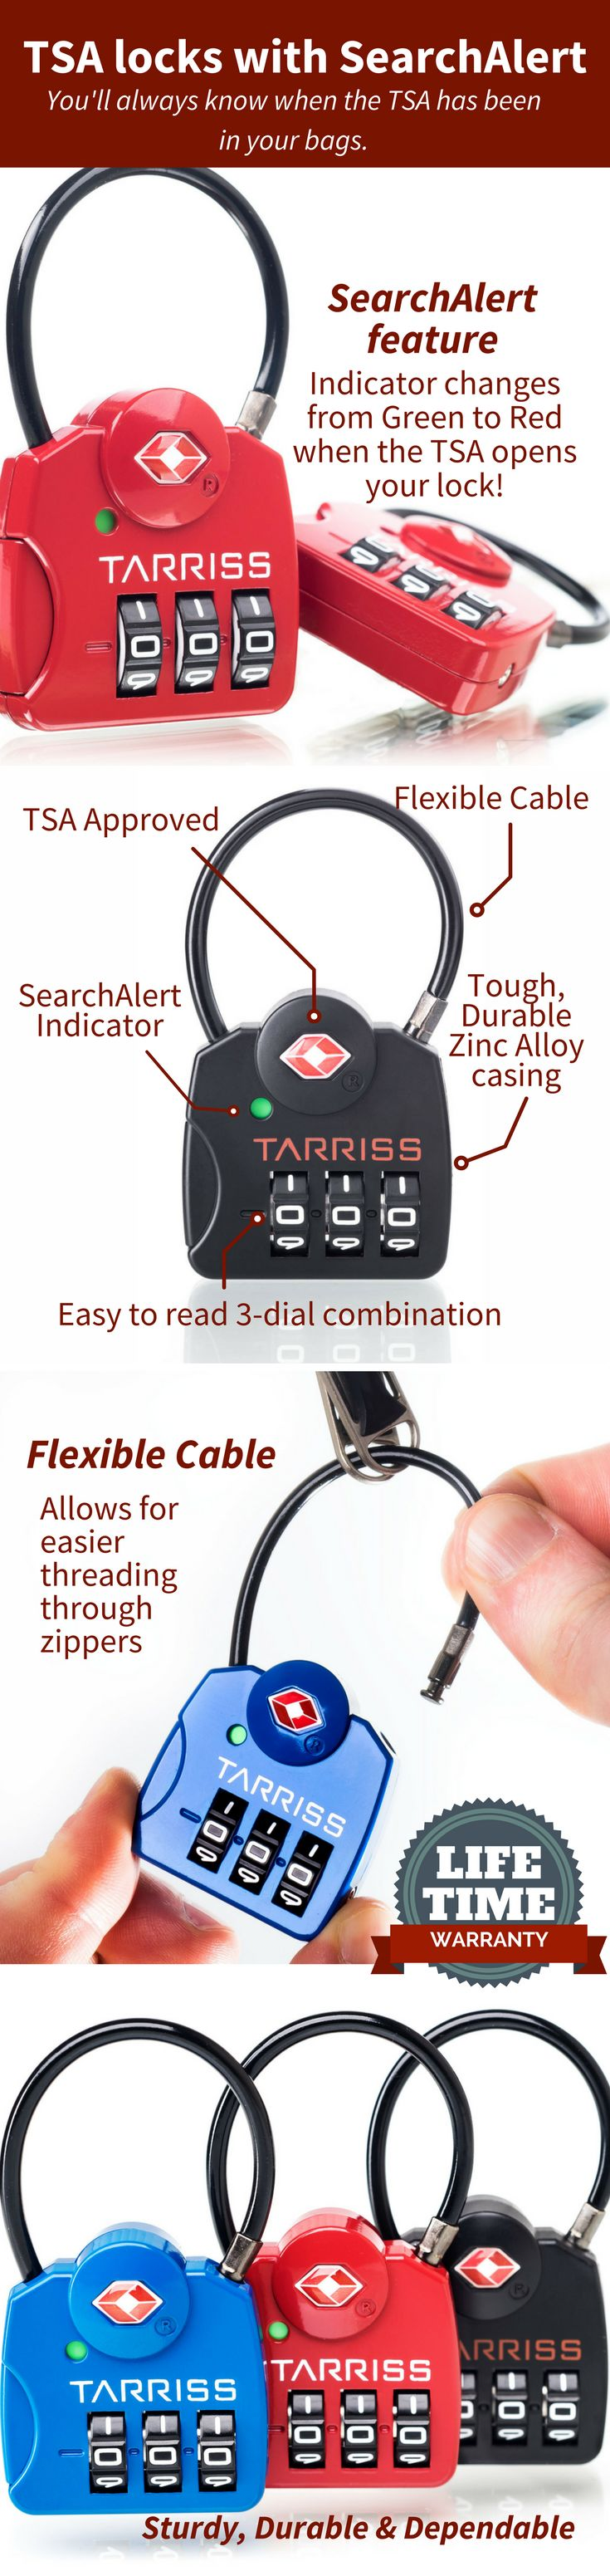 Secure you luggage! These Locks are recognized and accepted by TSA agents. With Search Alert feature, Easy to read 3 dial combination, flexible cable. These TSA locks are sturdy, durable and dependable. Comes in a set of 2. Also available in red and blue.